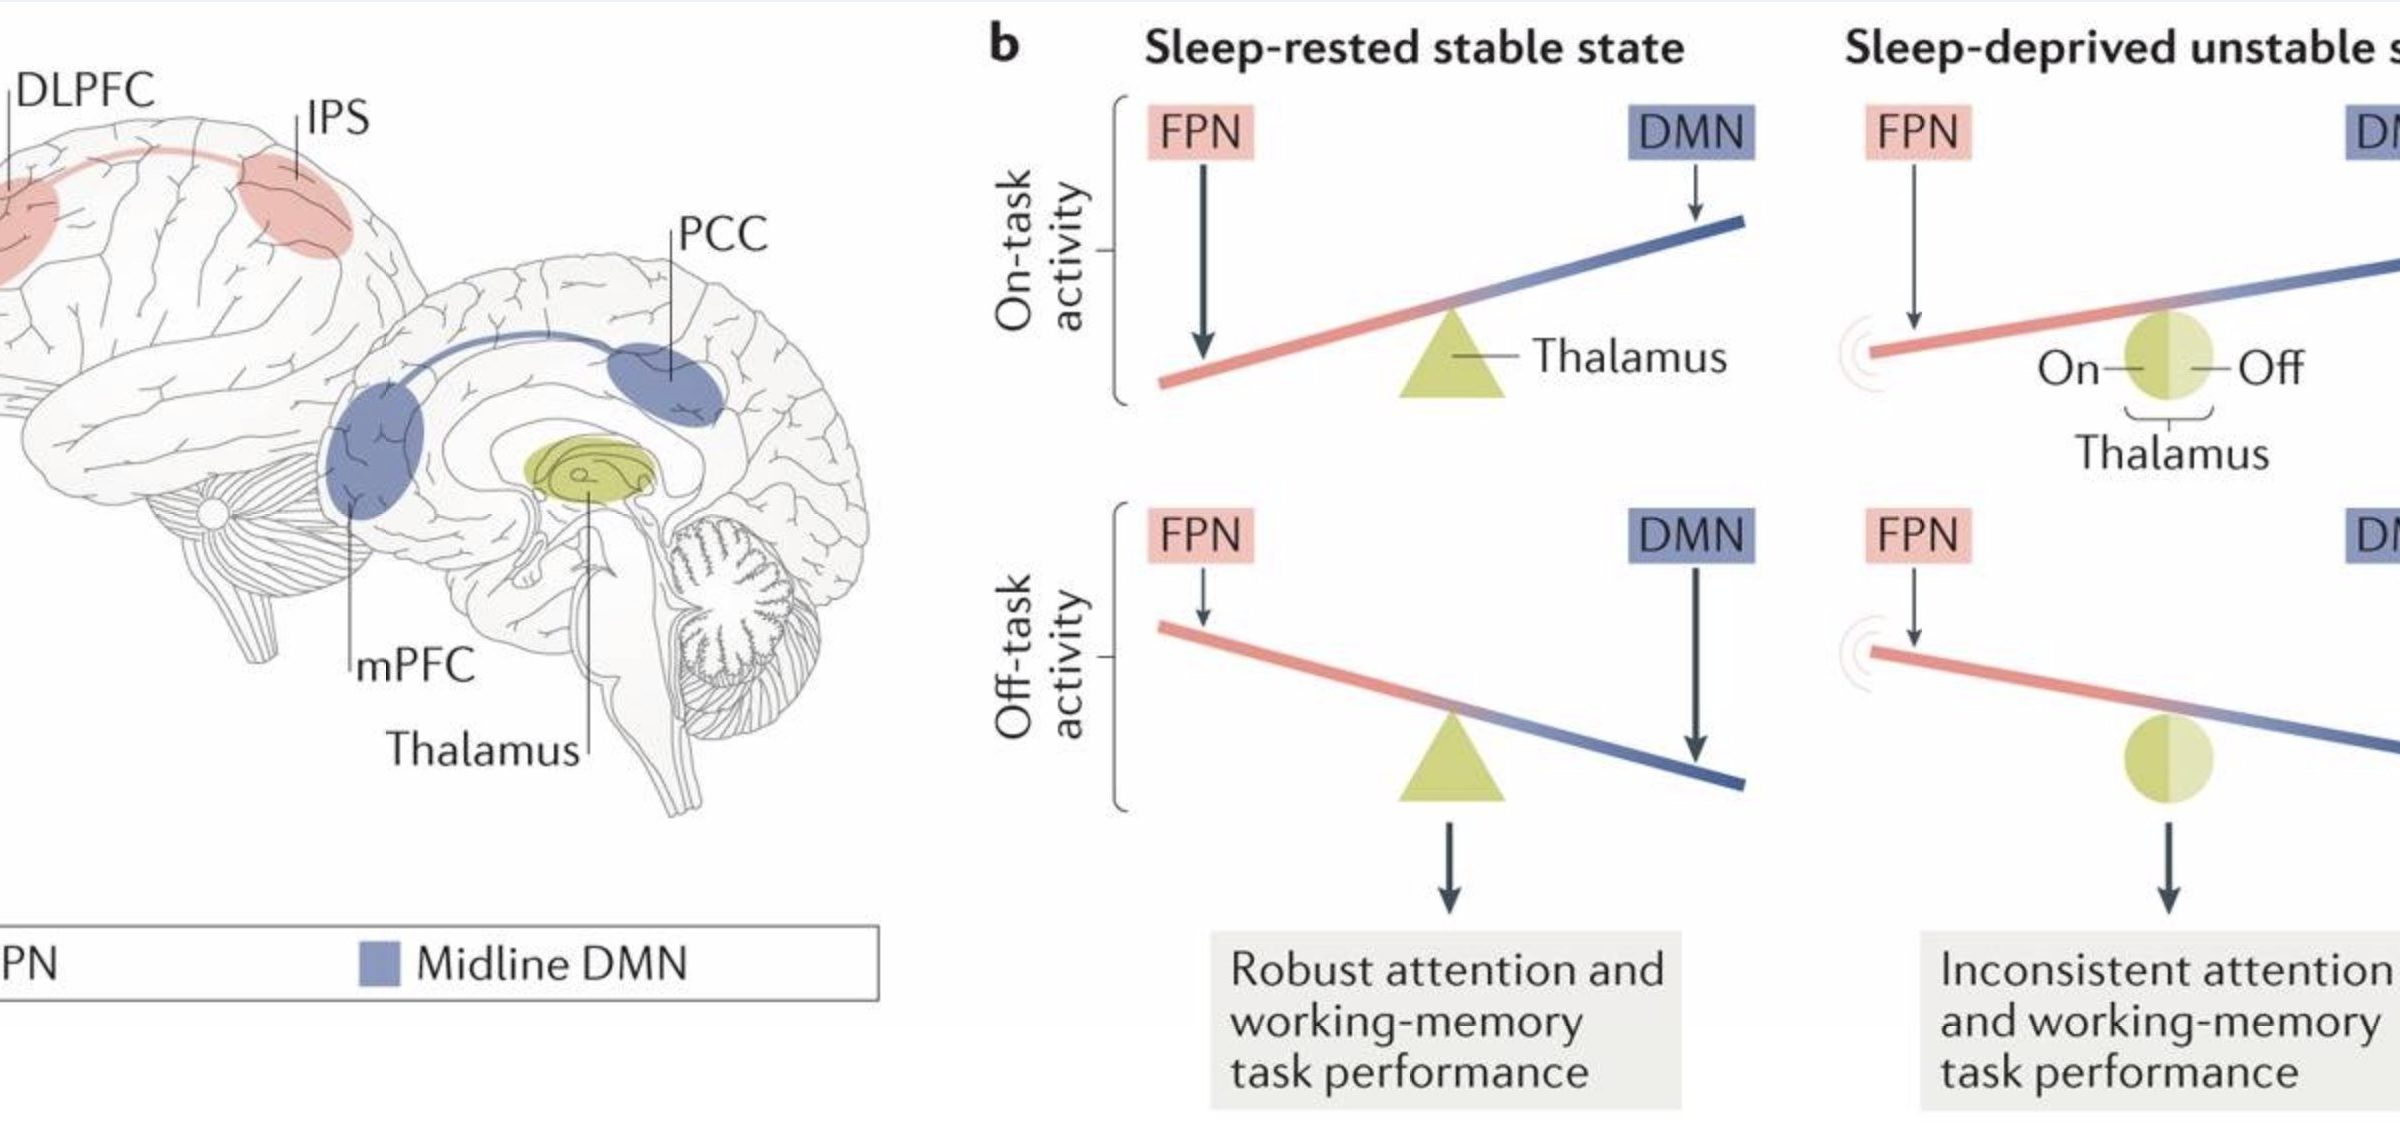 Sleep - A Complete Guide To REM Sleep and Sleep Stages